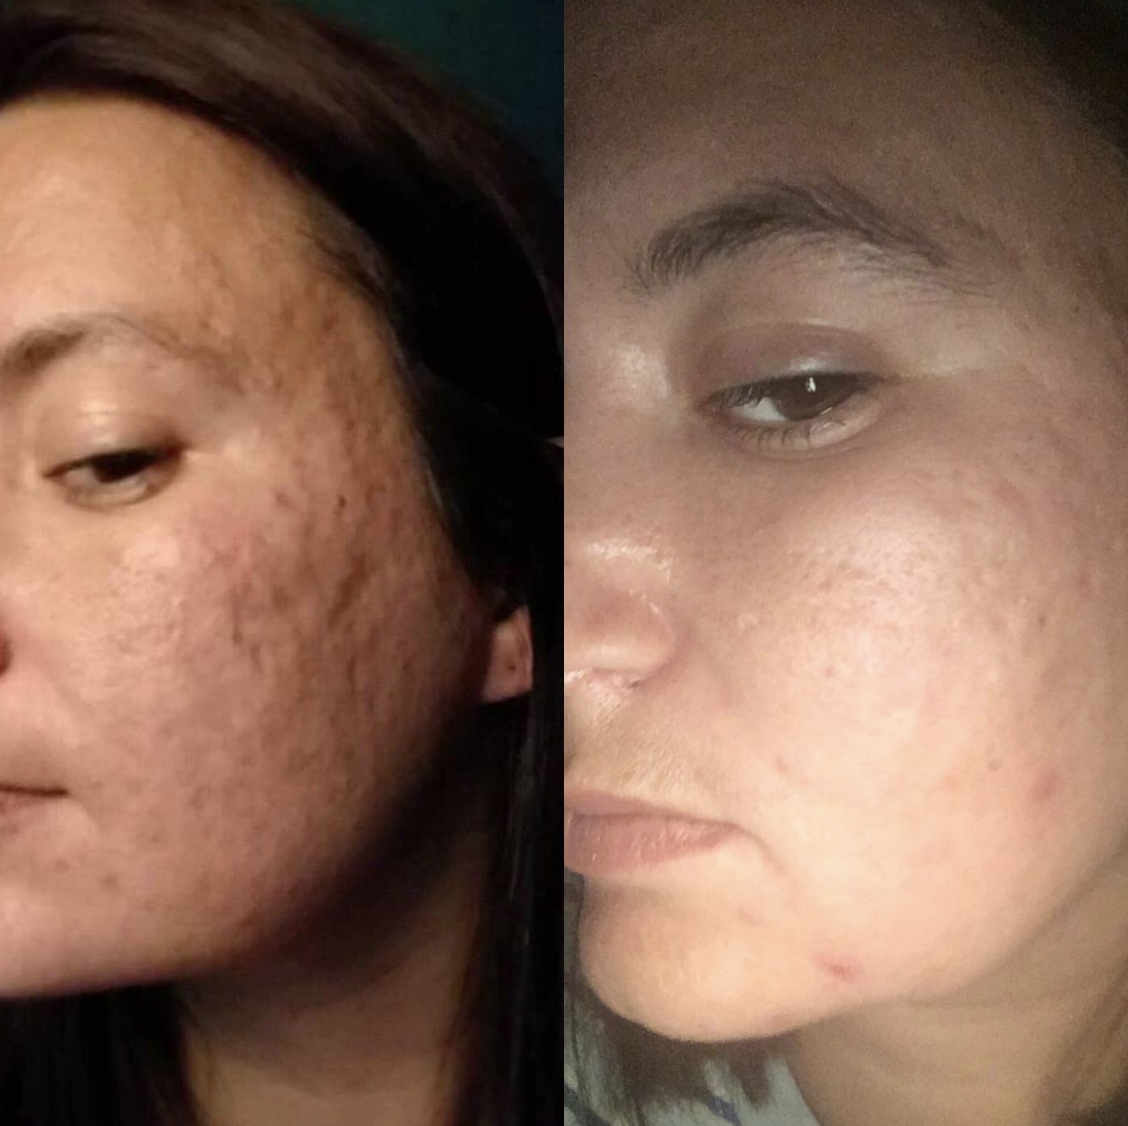 Left side shows reviewer with lots of acne pitting and redness while the right side shows the same reviewer with much less pitting and only two red spots